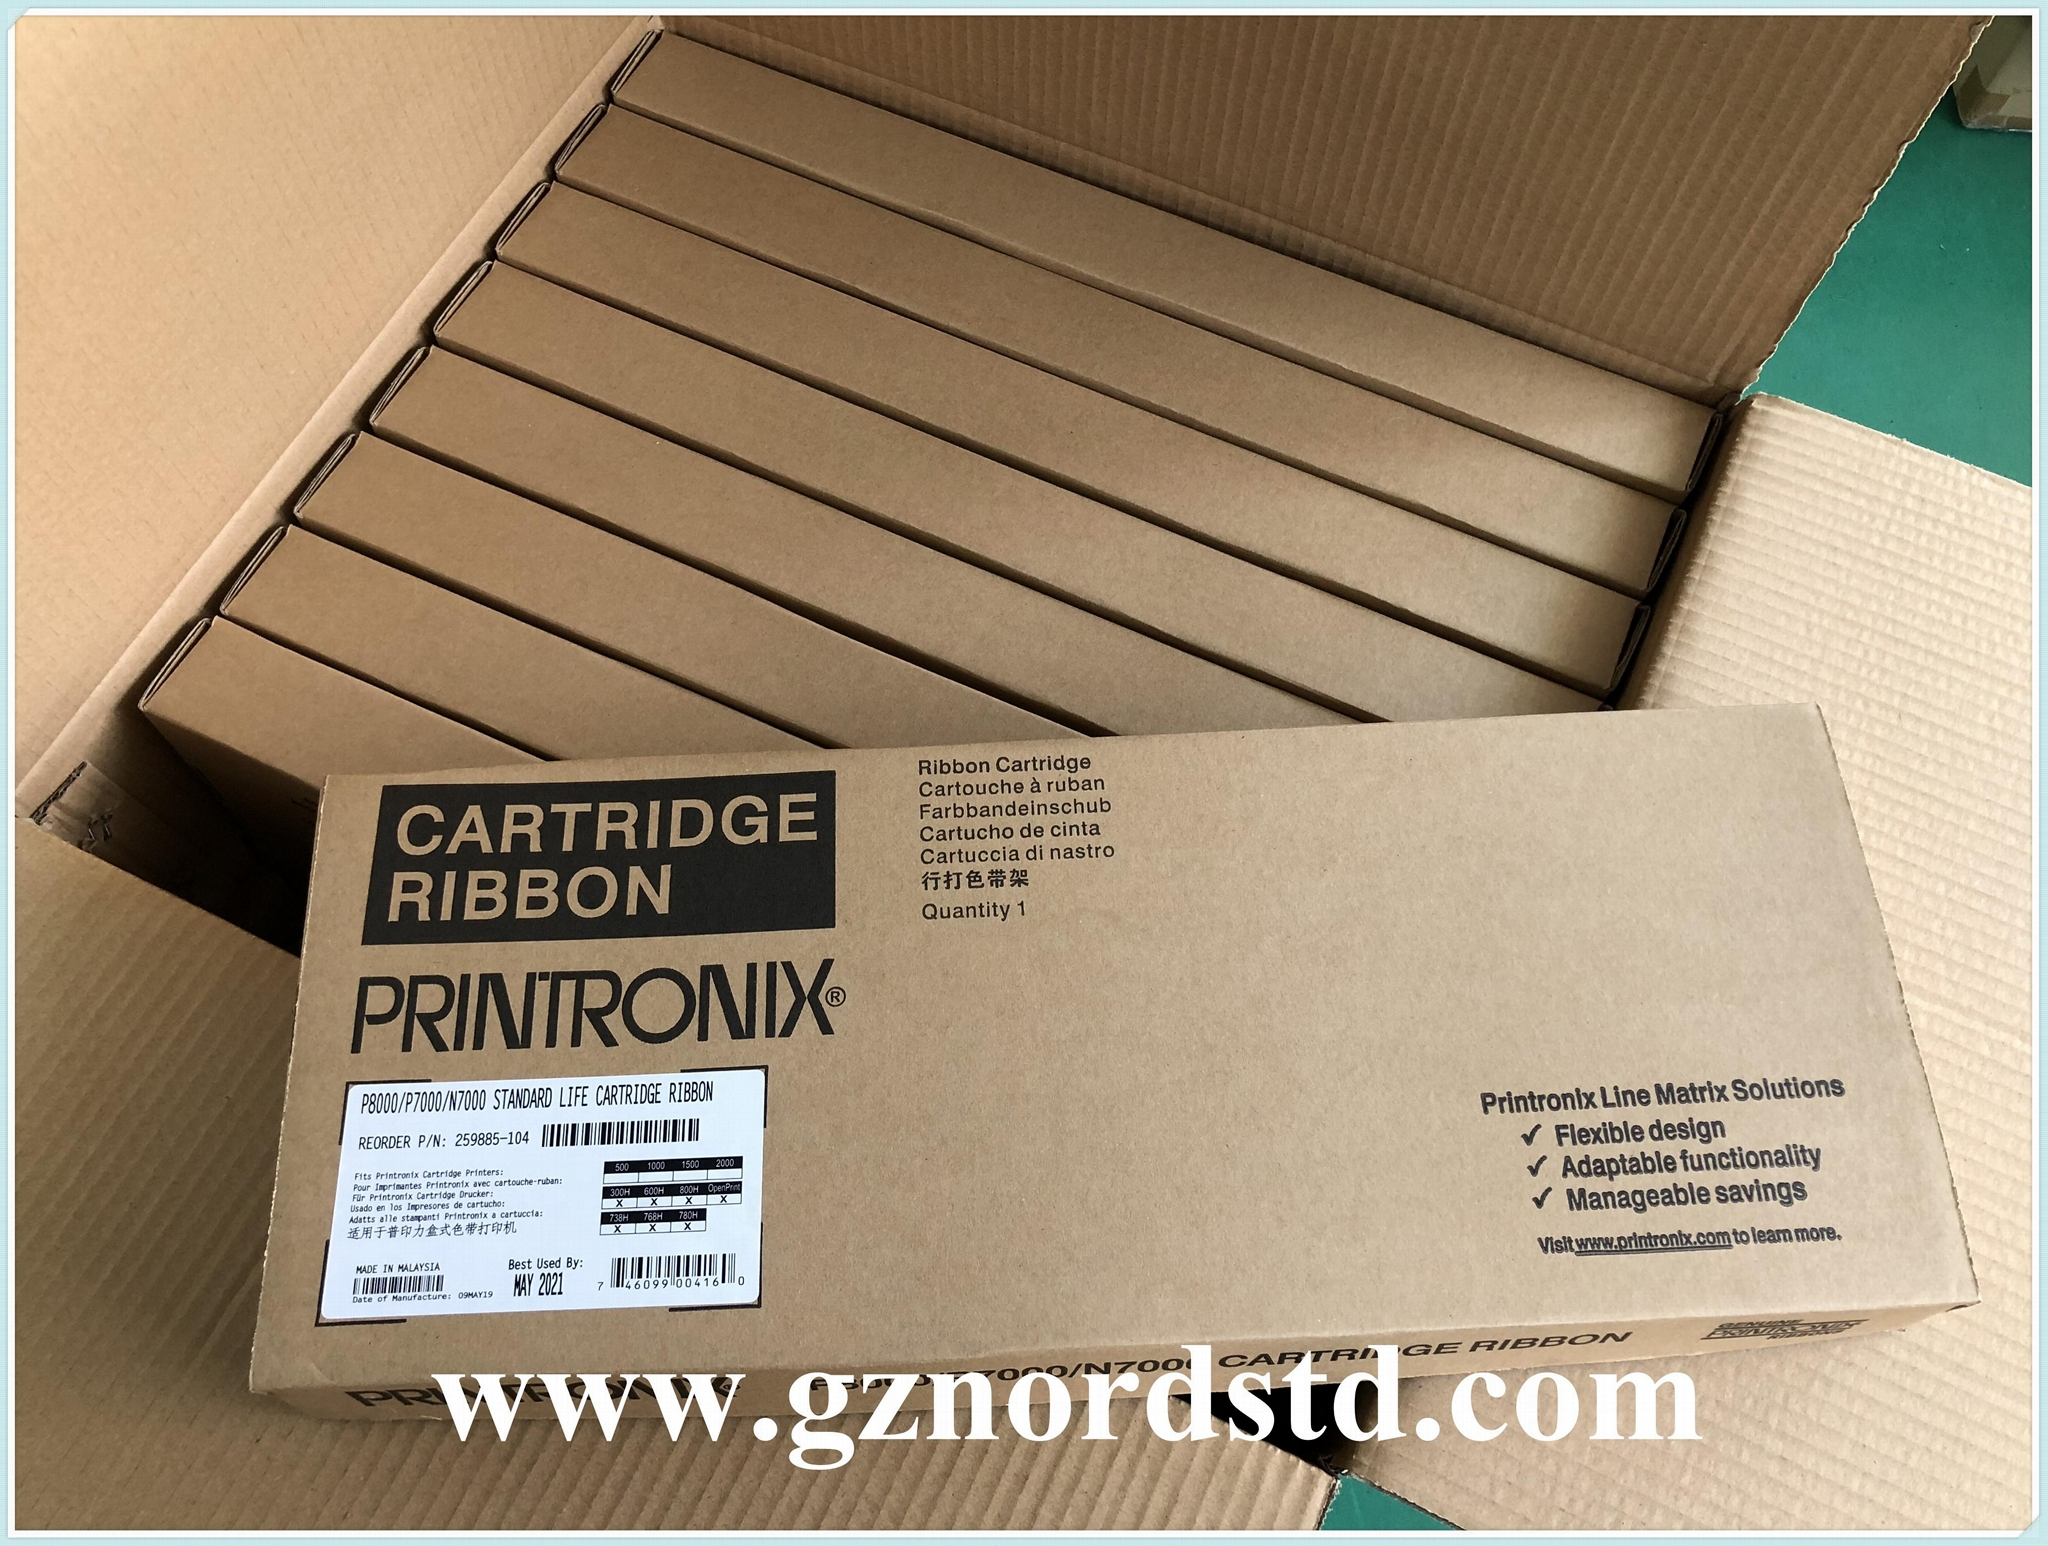 259885-104 New Original Printronix Ribbon Cartridges for P8000 P7000 series 5